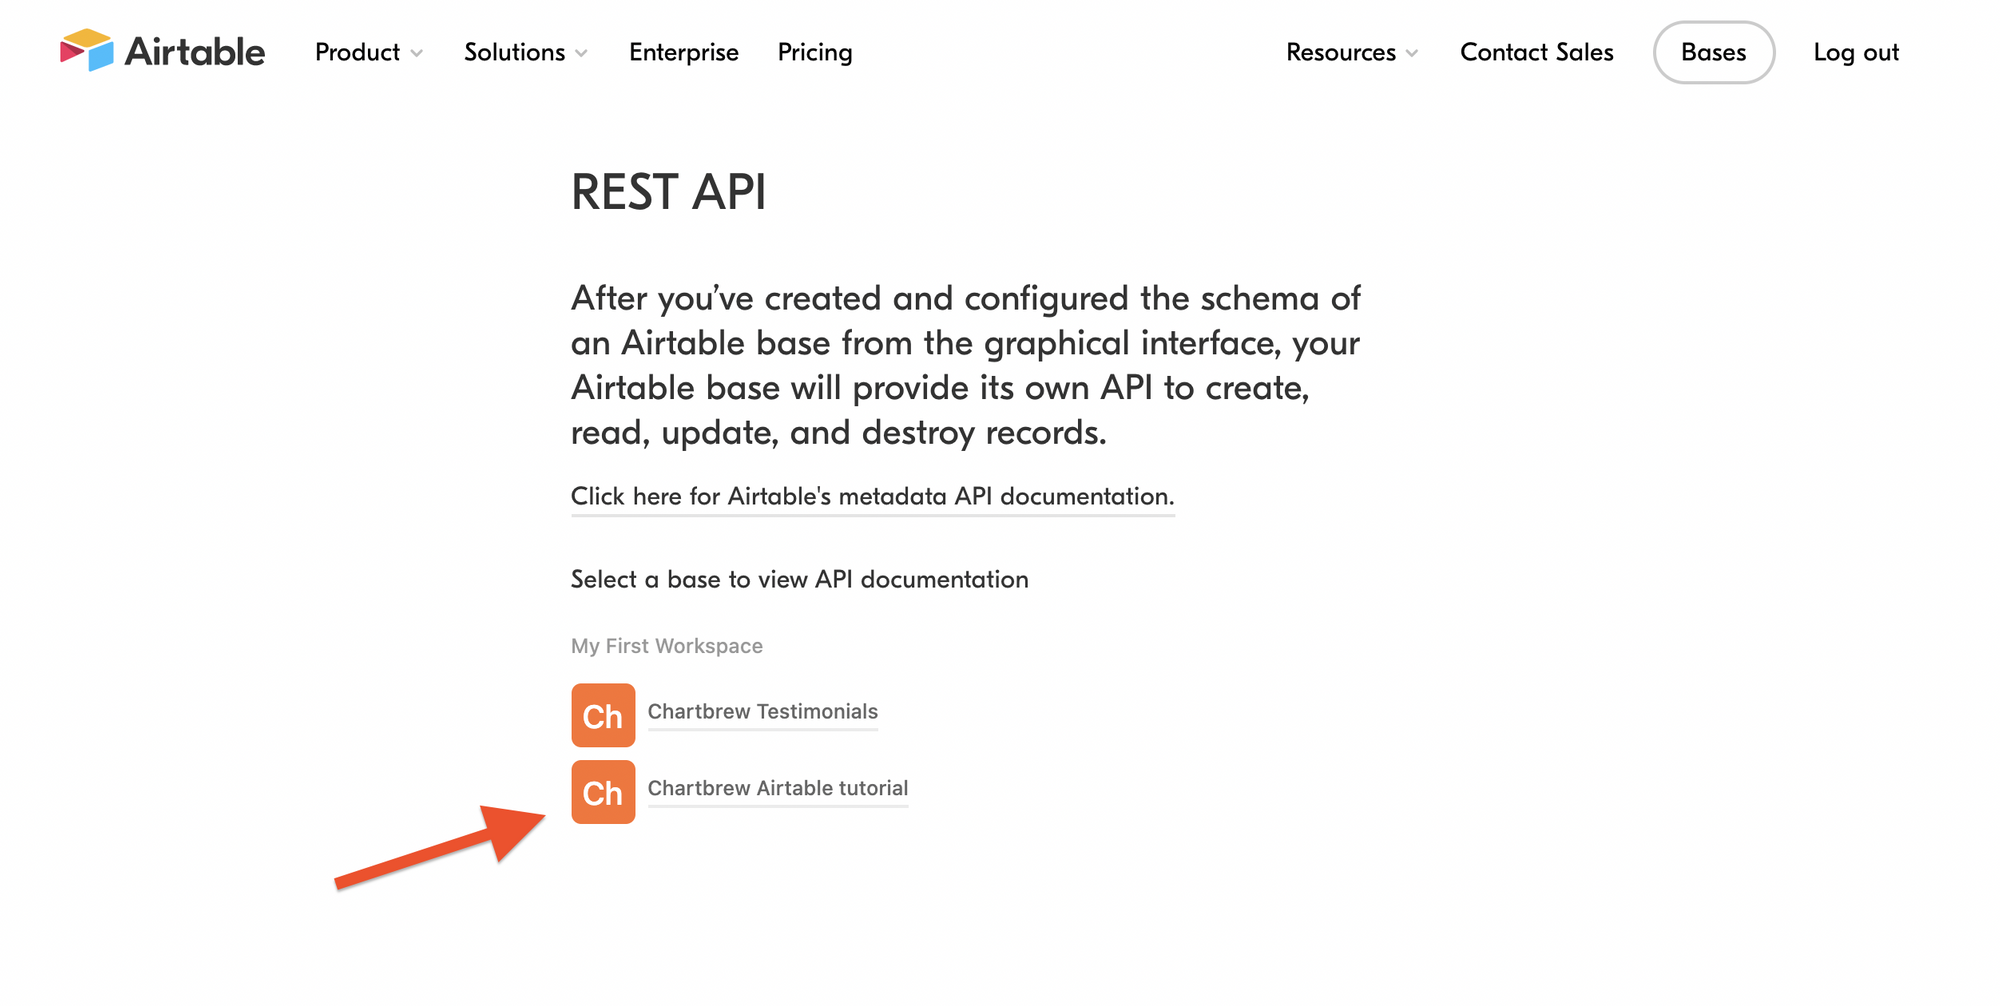 Preparing Airtable base for the Chartbrew integration